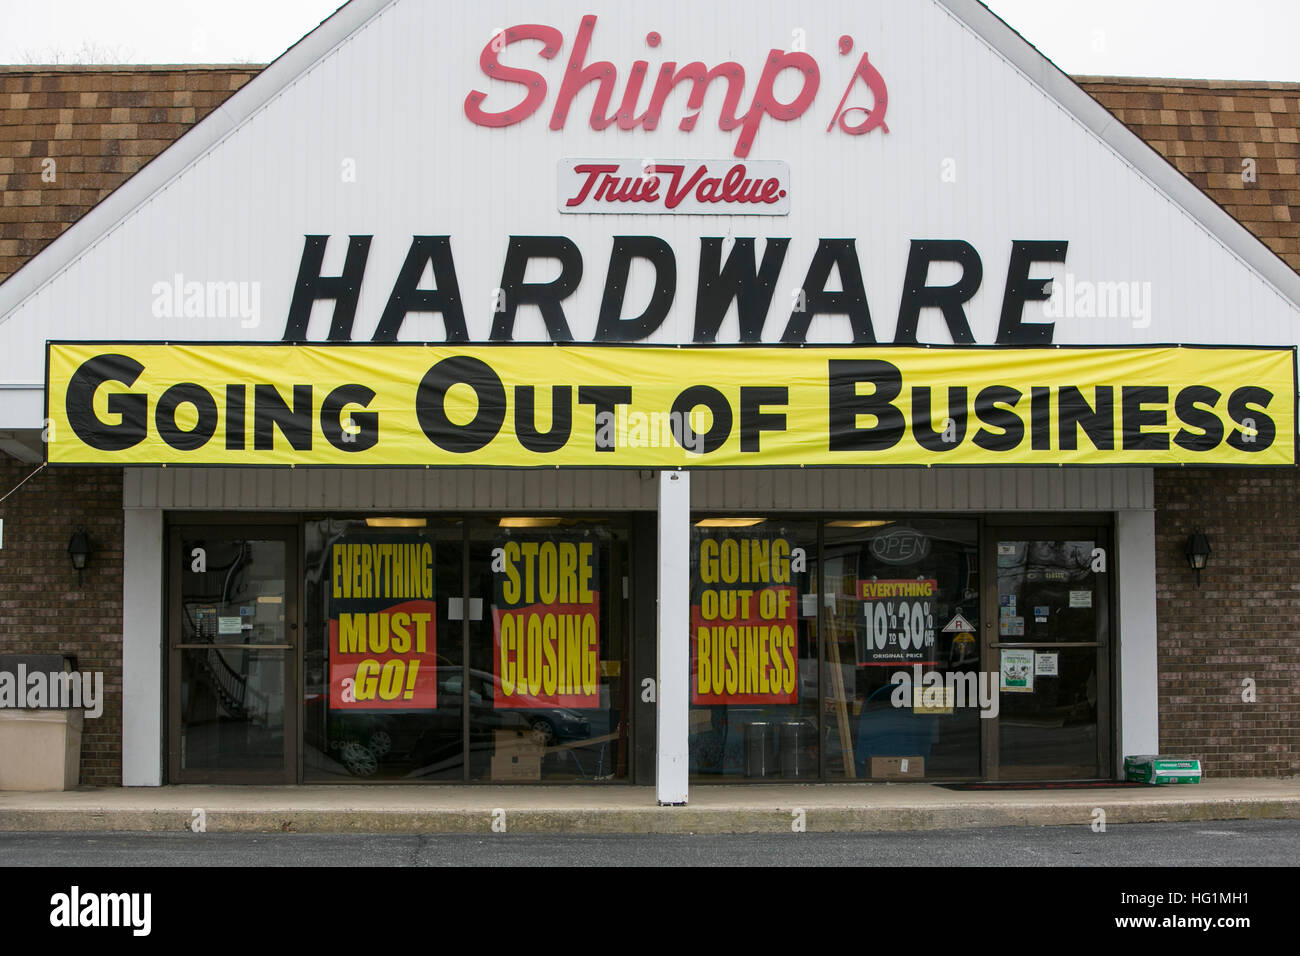 Going Out of Business signs on a True Value hardware retail store in Pennsville, New Jersey on December 11, 2016. - Stock Image